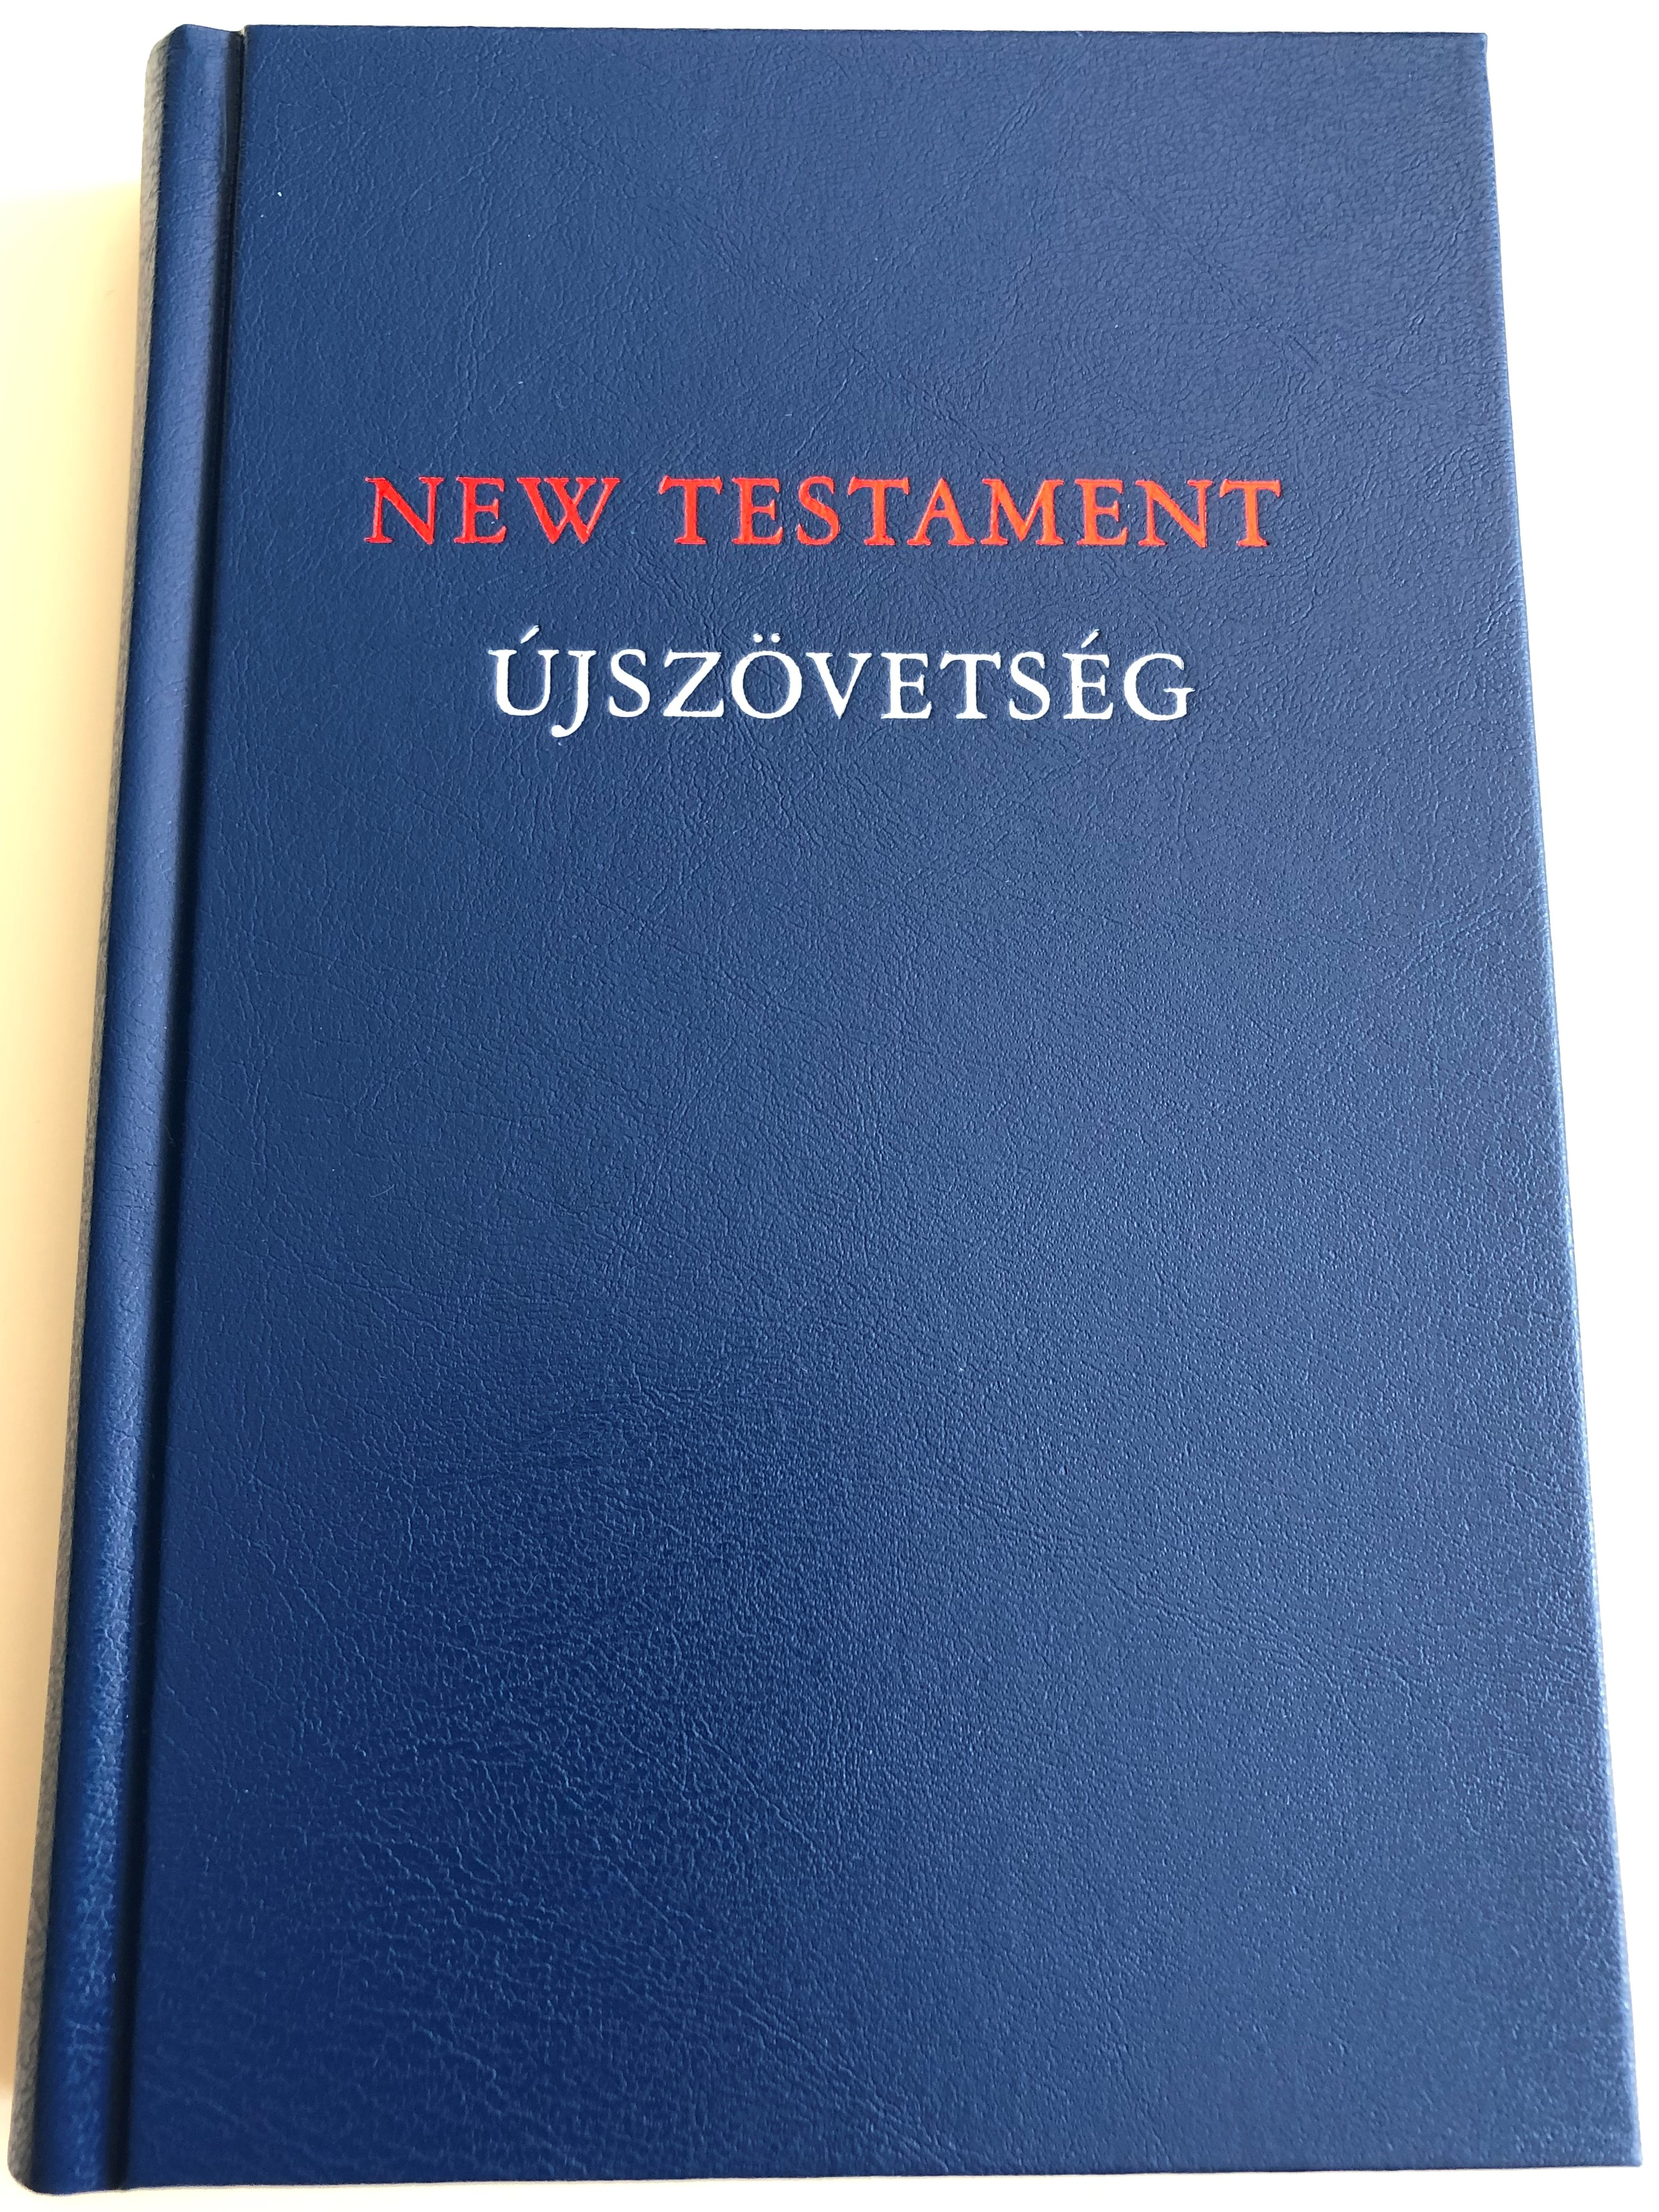 new-testament-gnt-jsz-vets-g-r-f-english-hungarian-bilingual-new-testament-parallel-column-text-hardcover-magyar-bibliat-rsulat-2019-1-.jpg